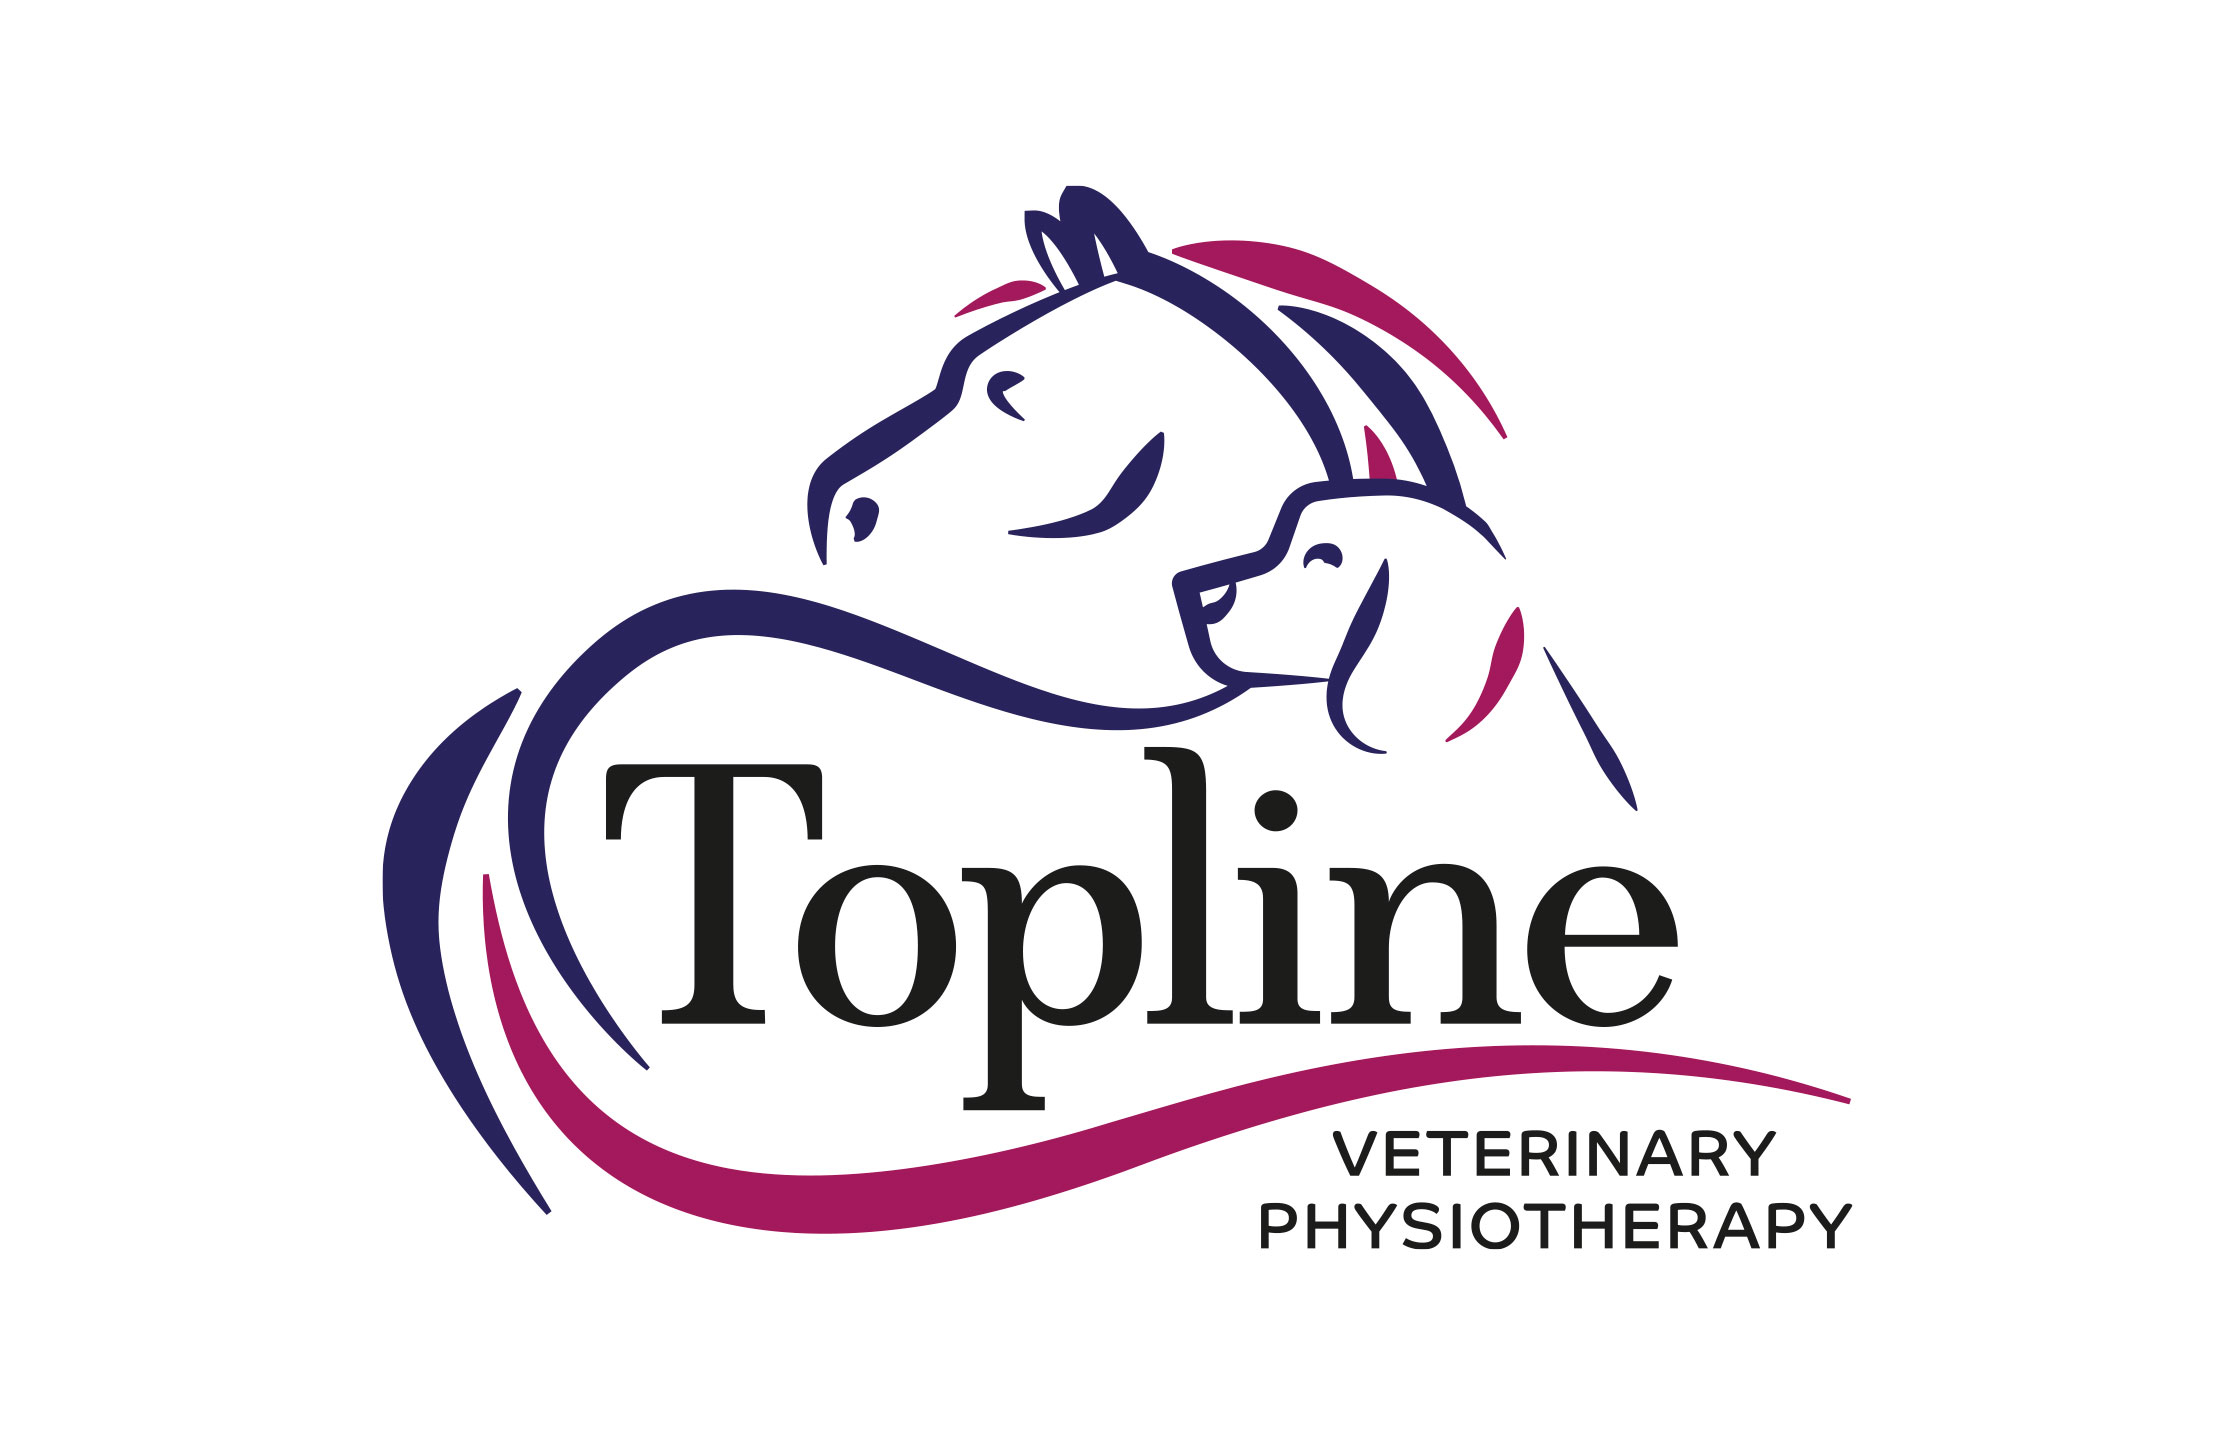 Topline Veterinary Physiotherapy logo design